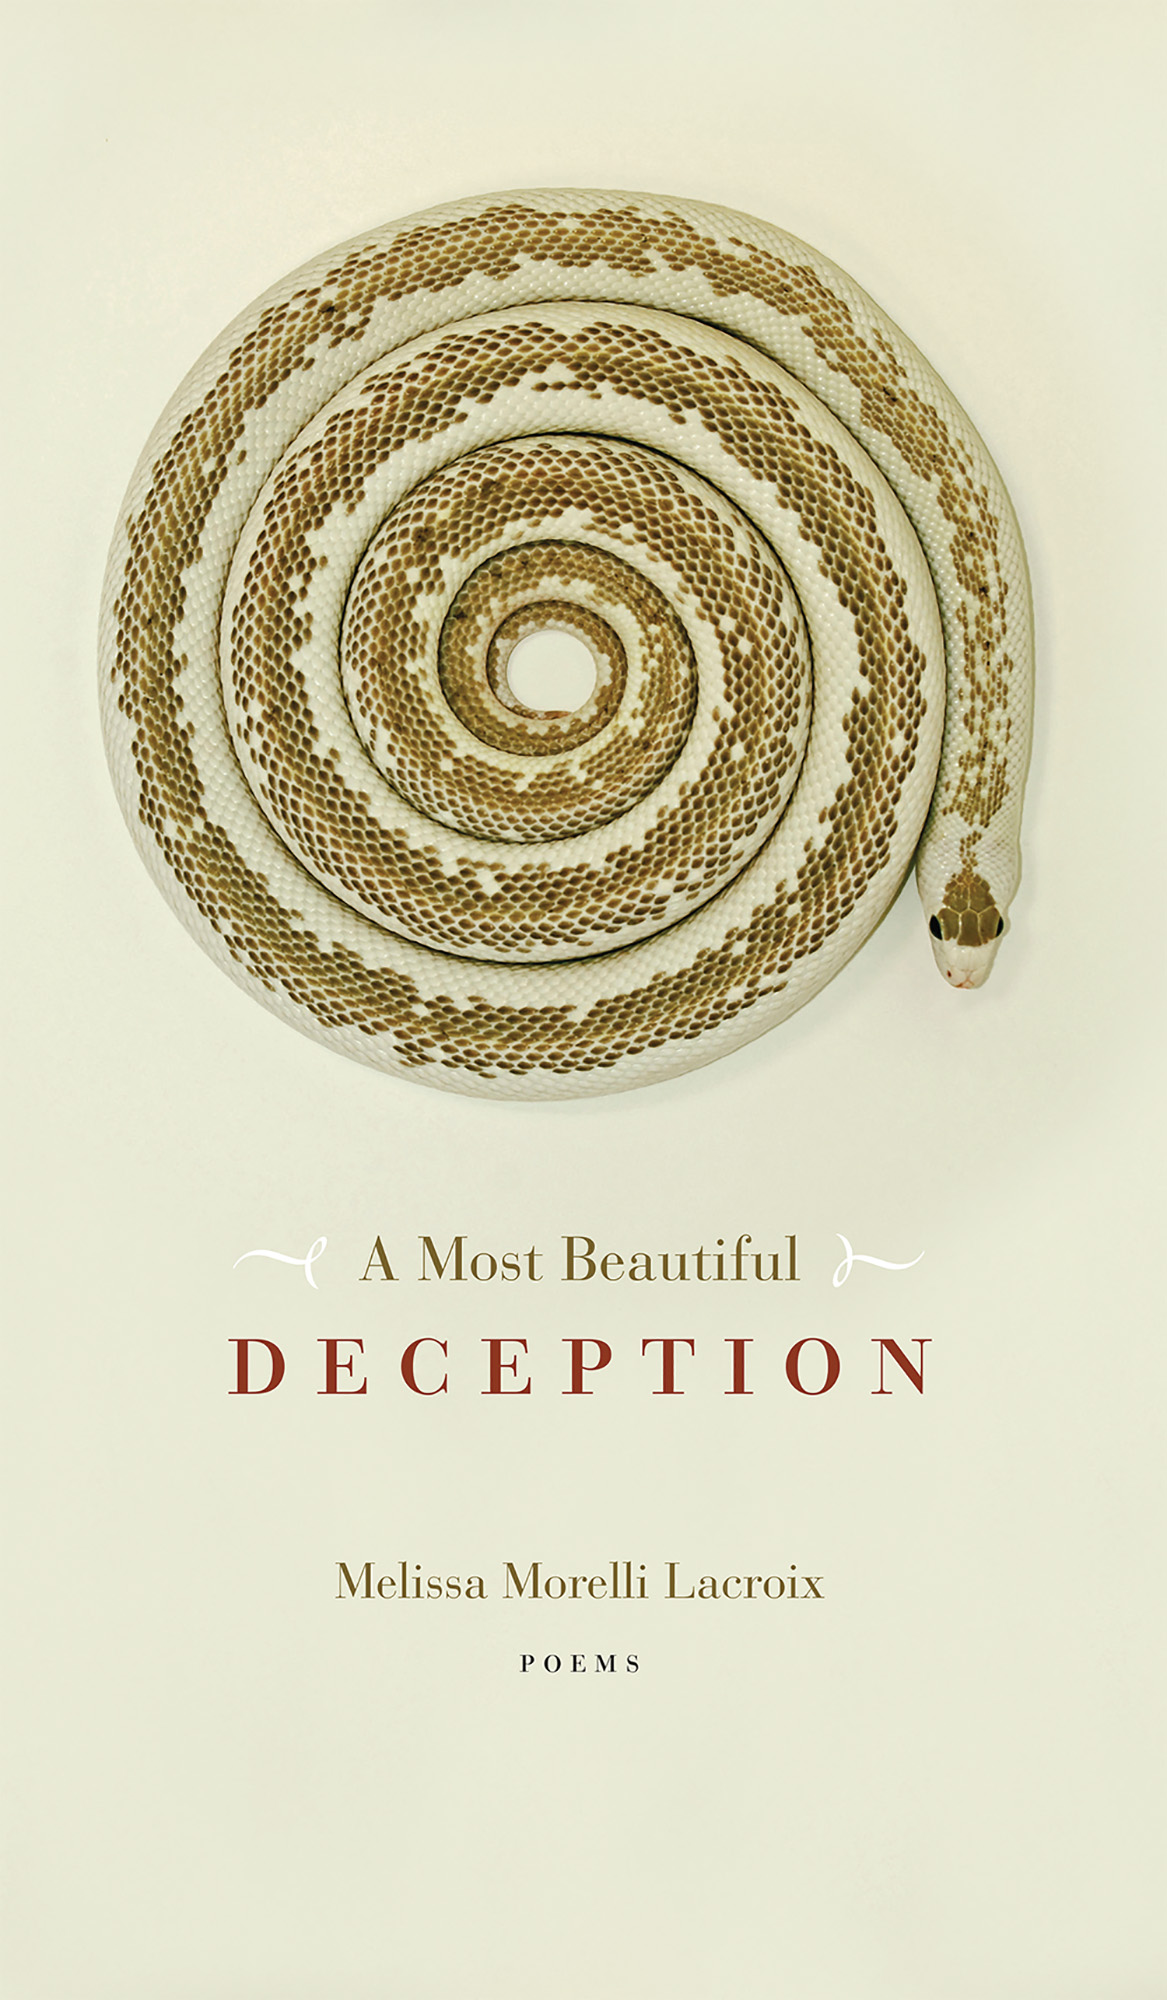 A Most Beautiful Deception